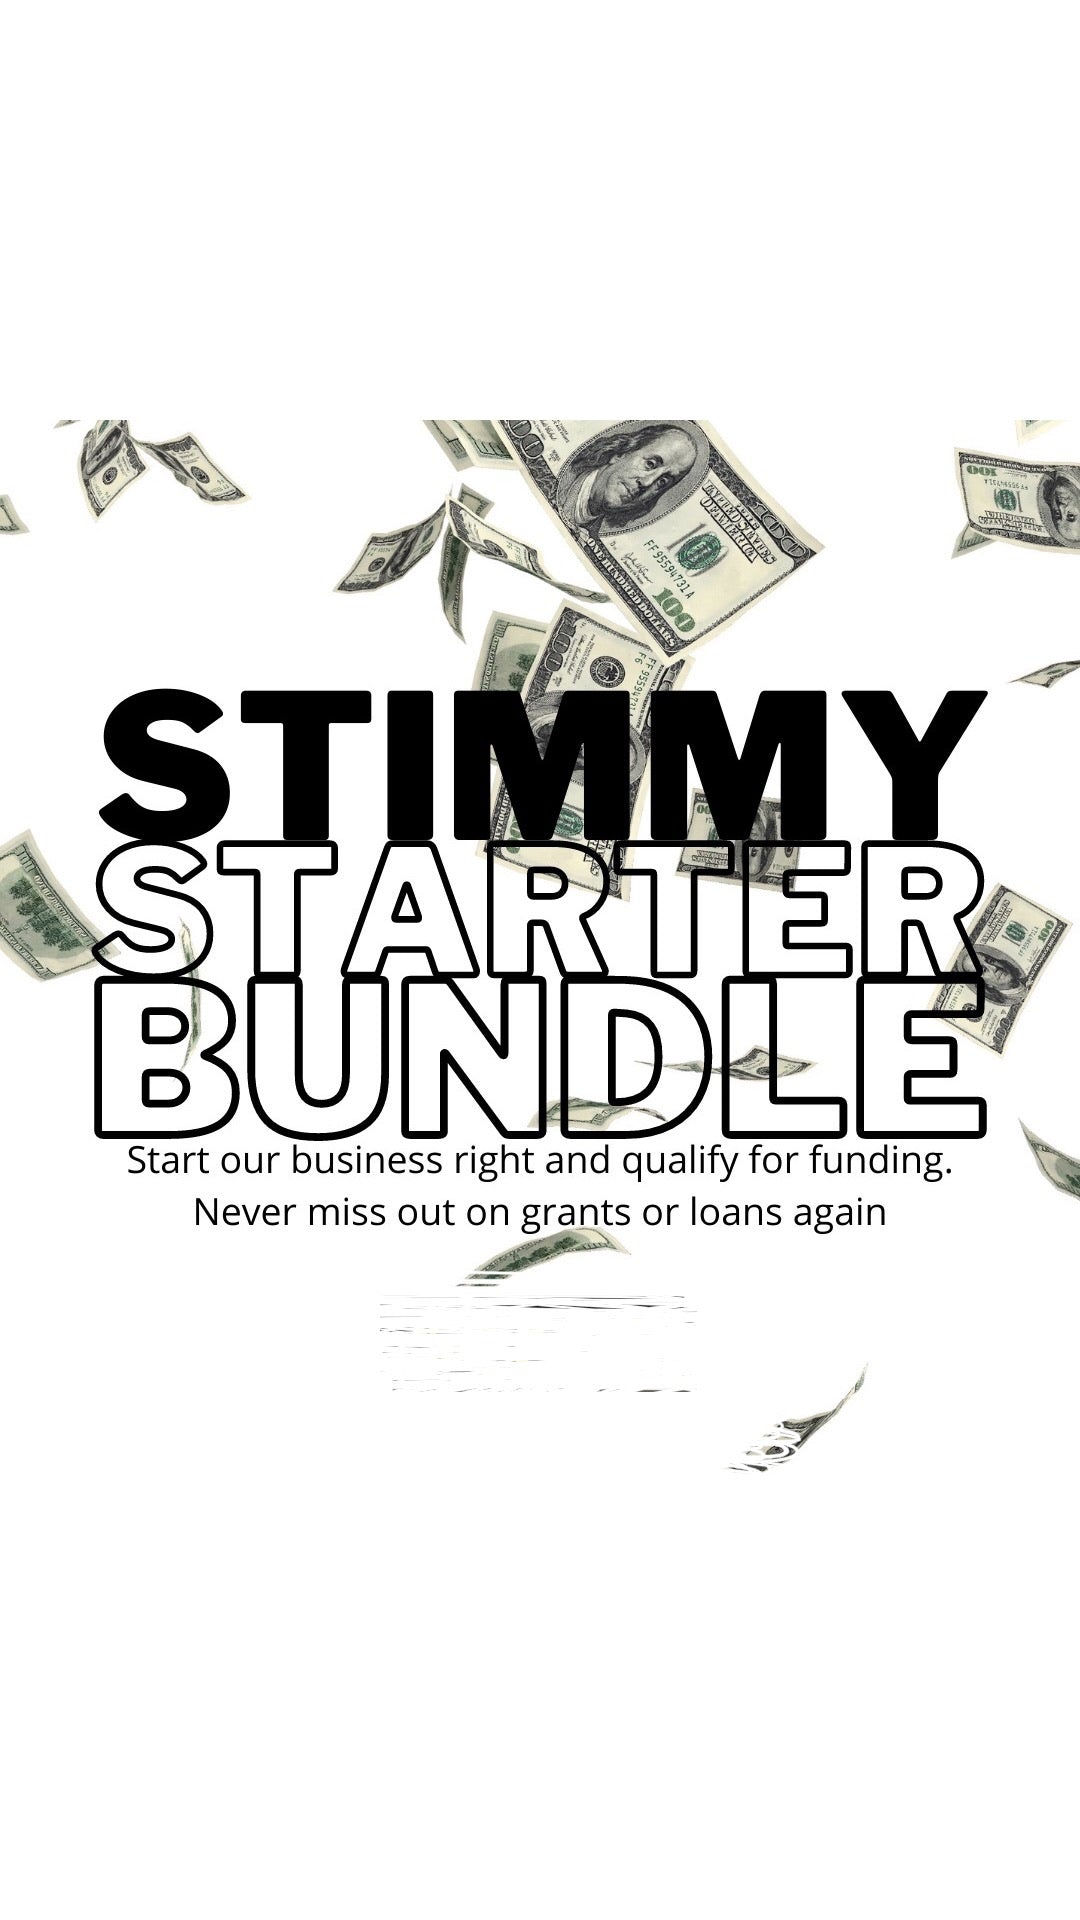 Stimmy Starter Bundle